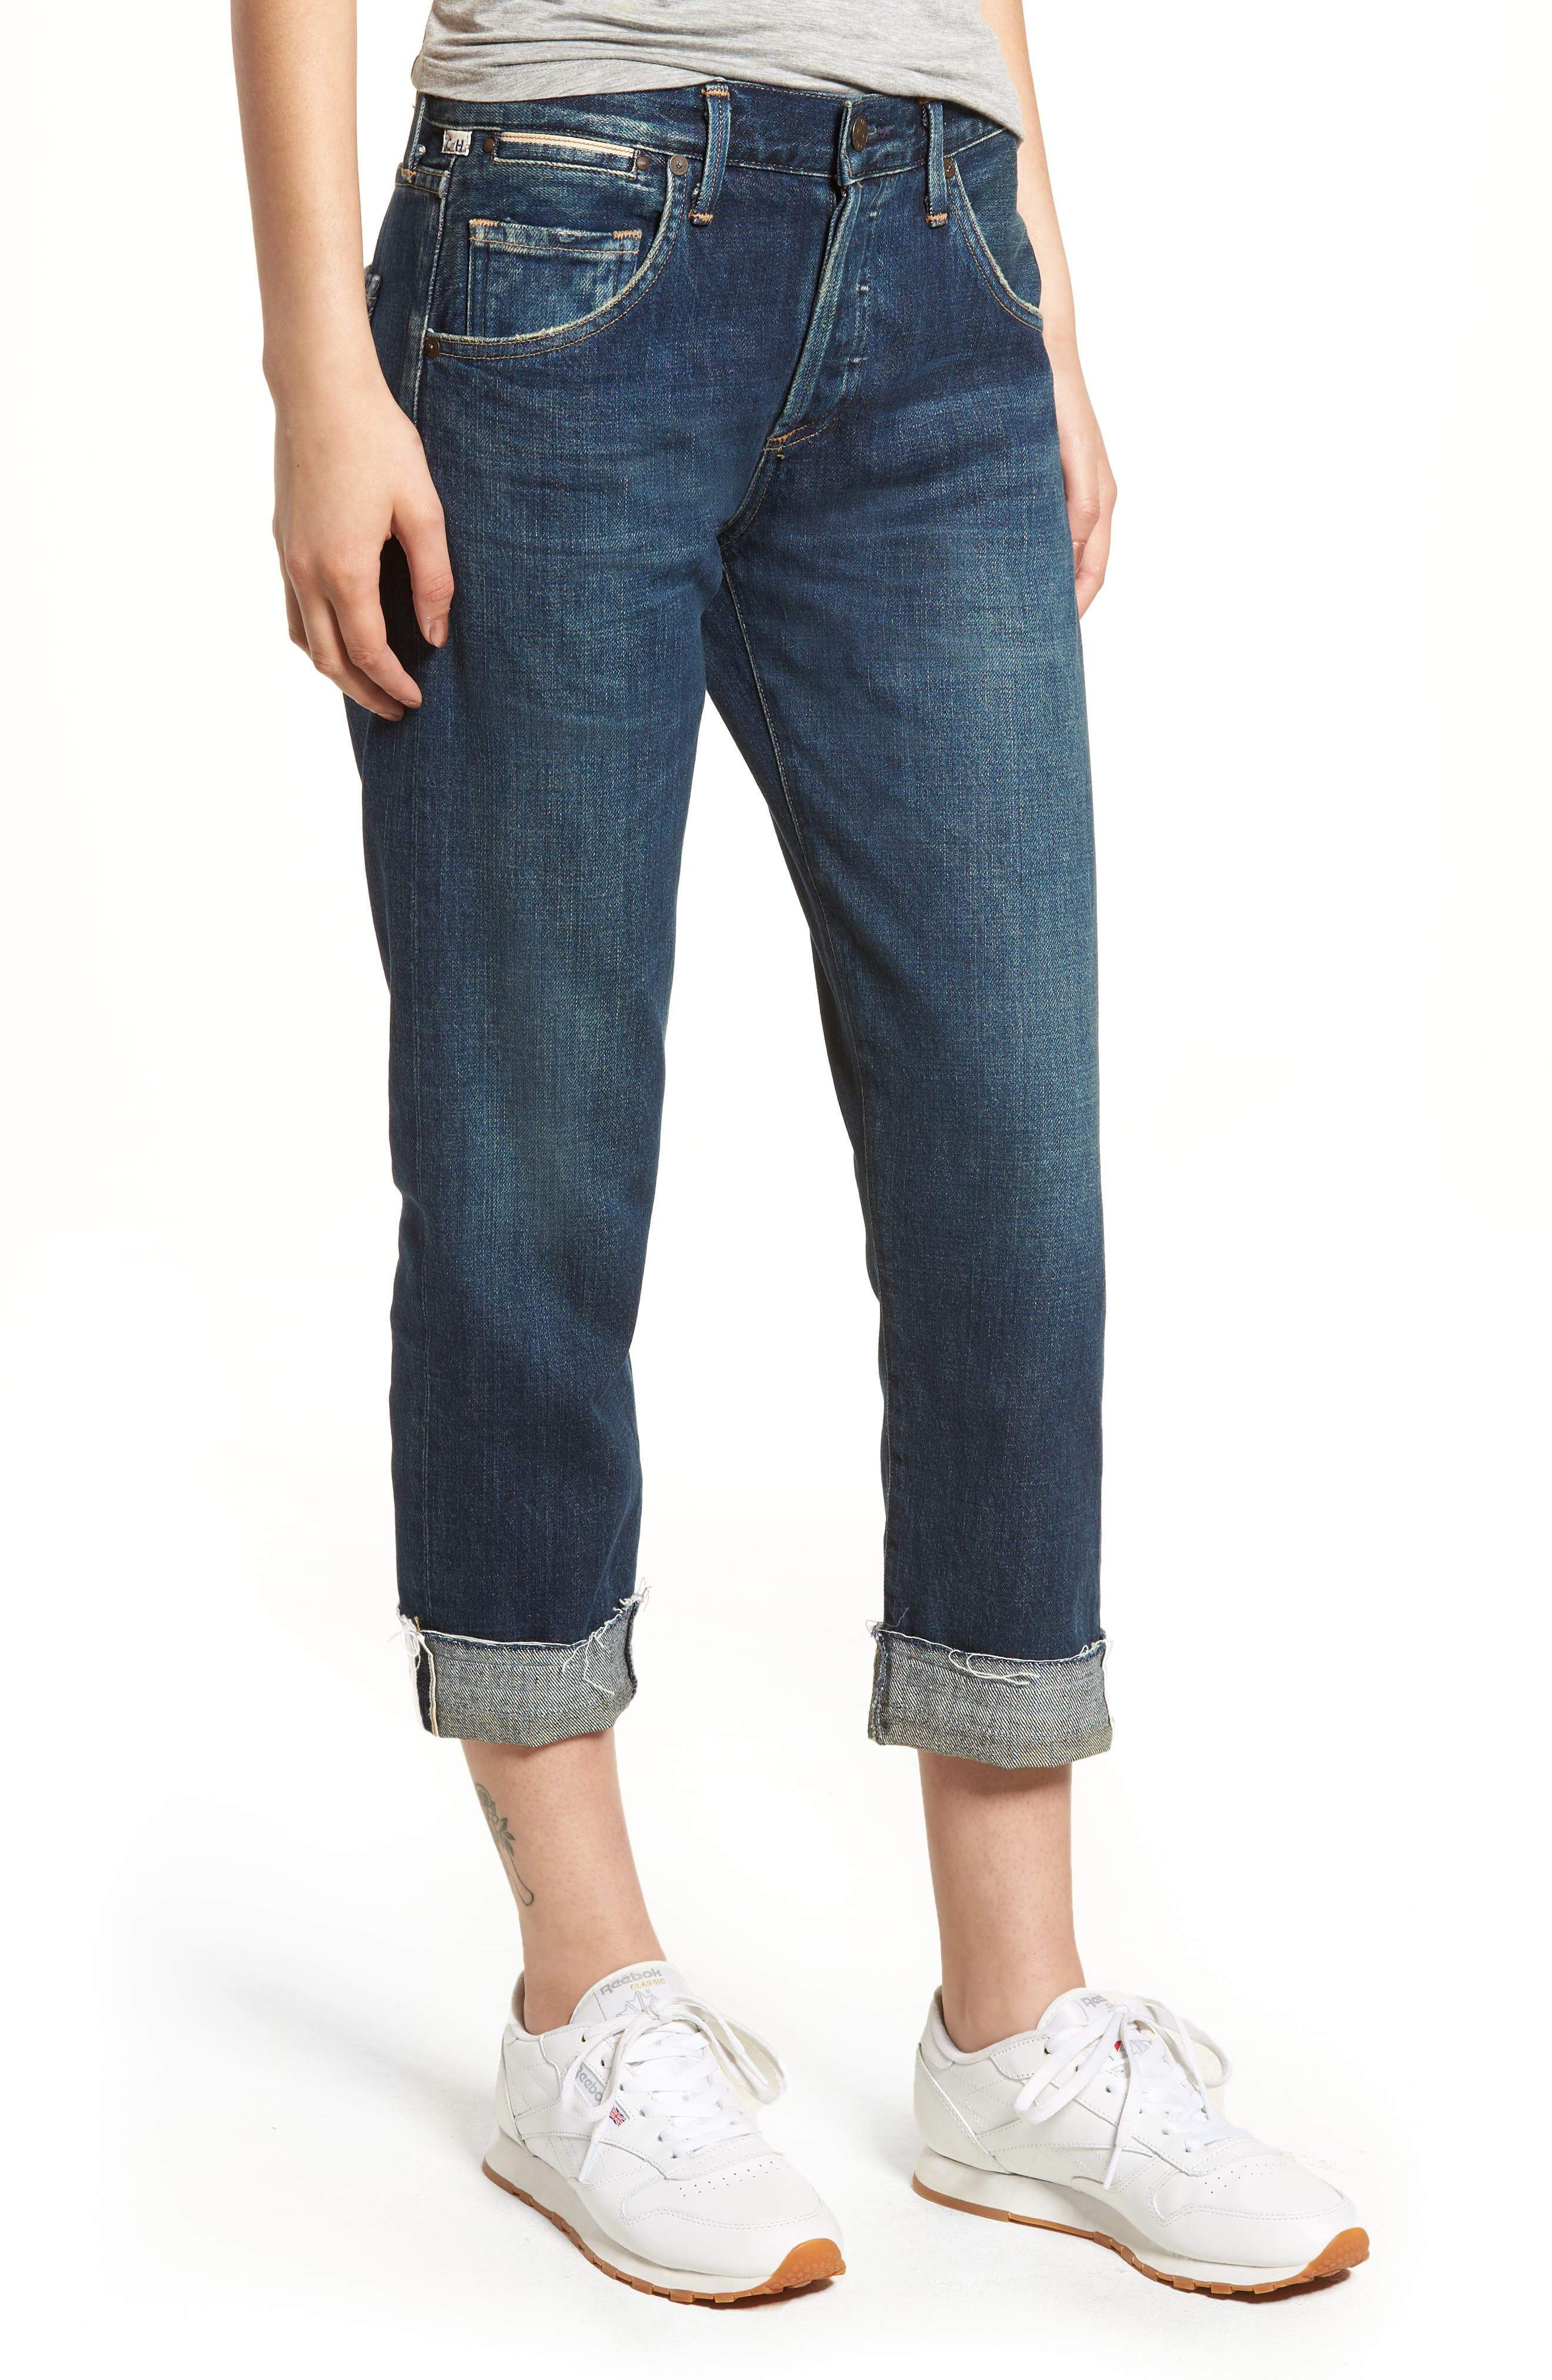 CITIZENS OF HUMANITY, Emerson Crop Slim Boyfriend Jeans, Main thumbnail 1, color, WHITAKER